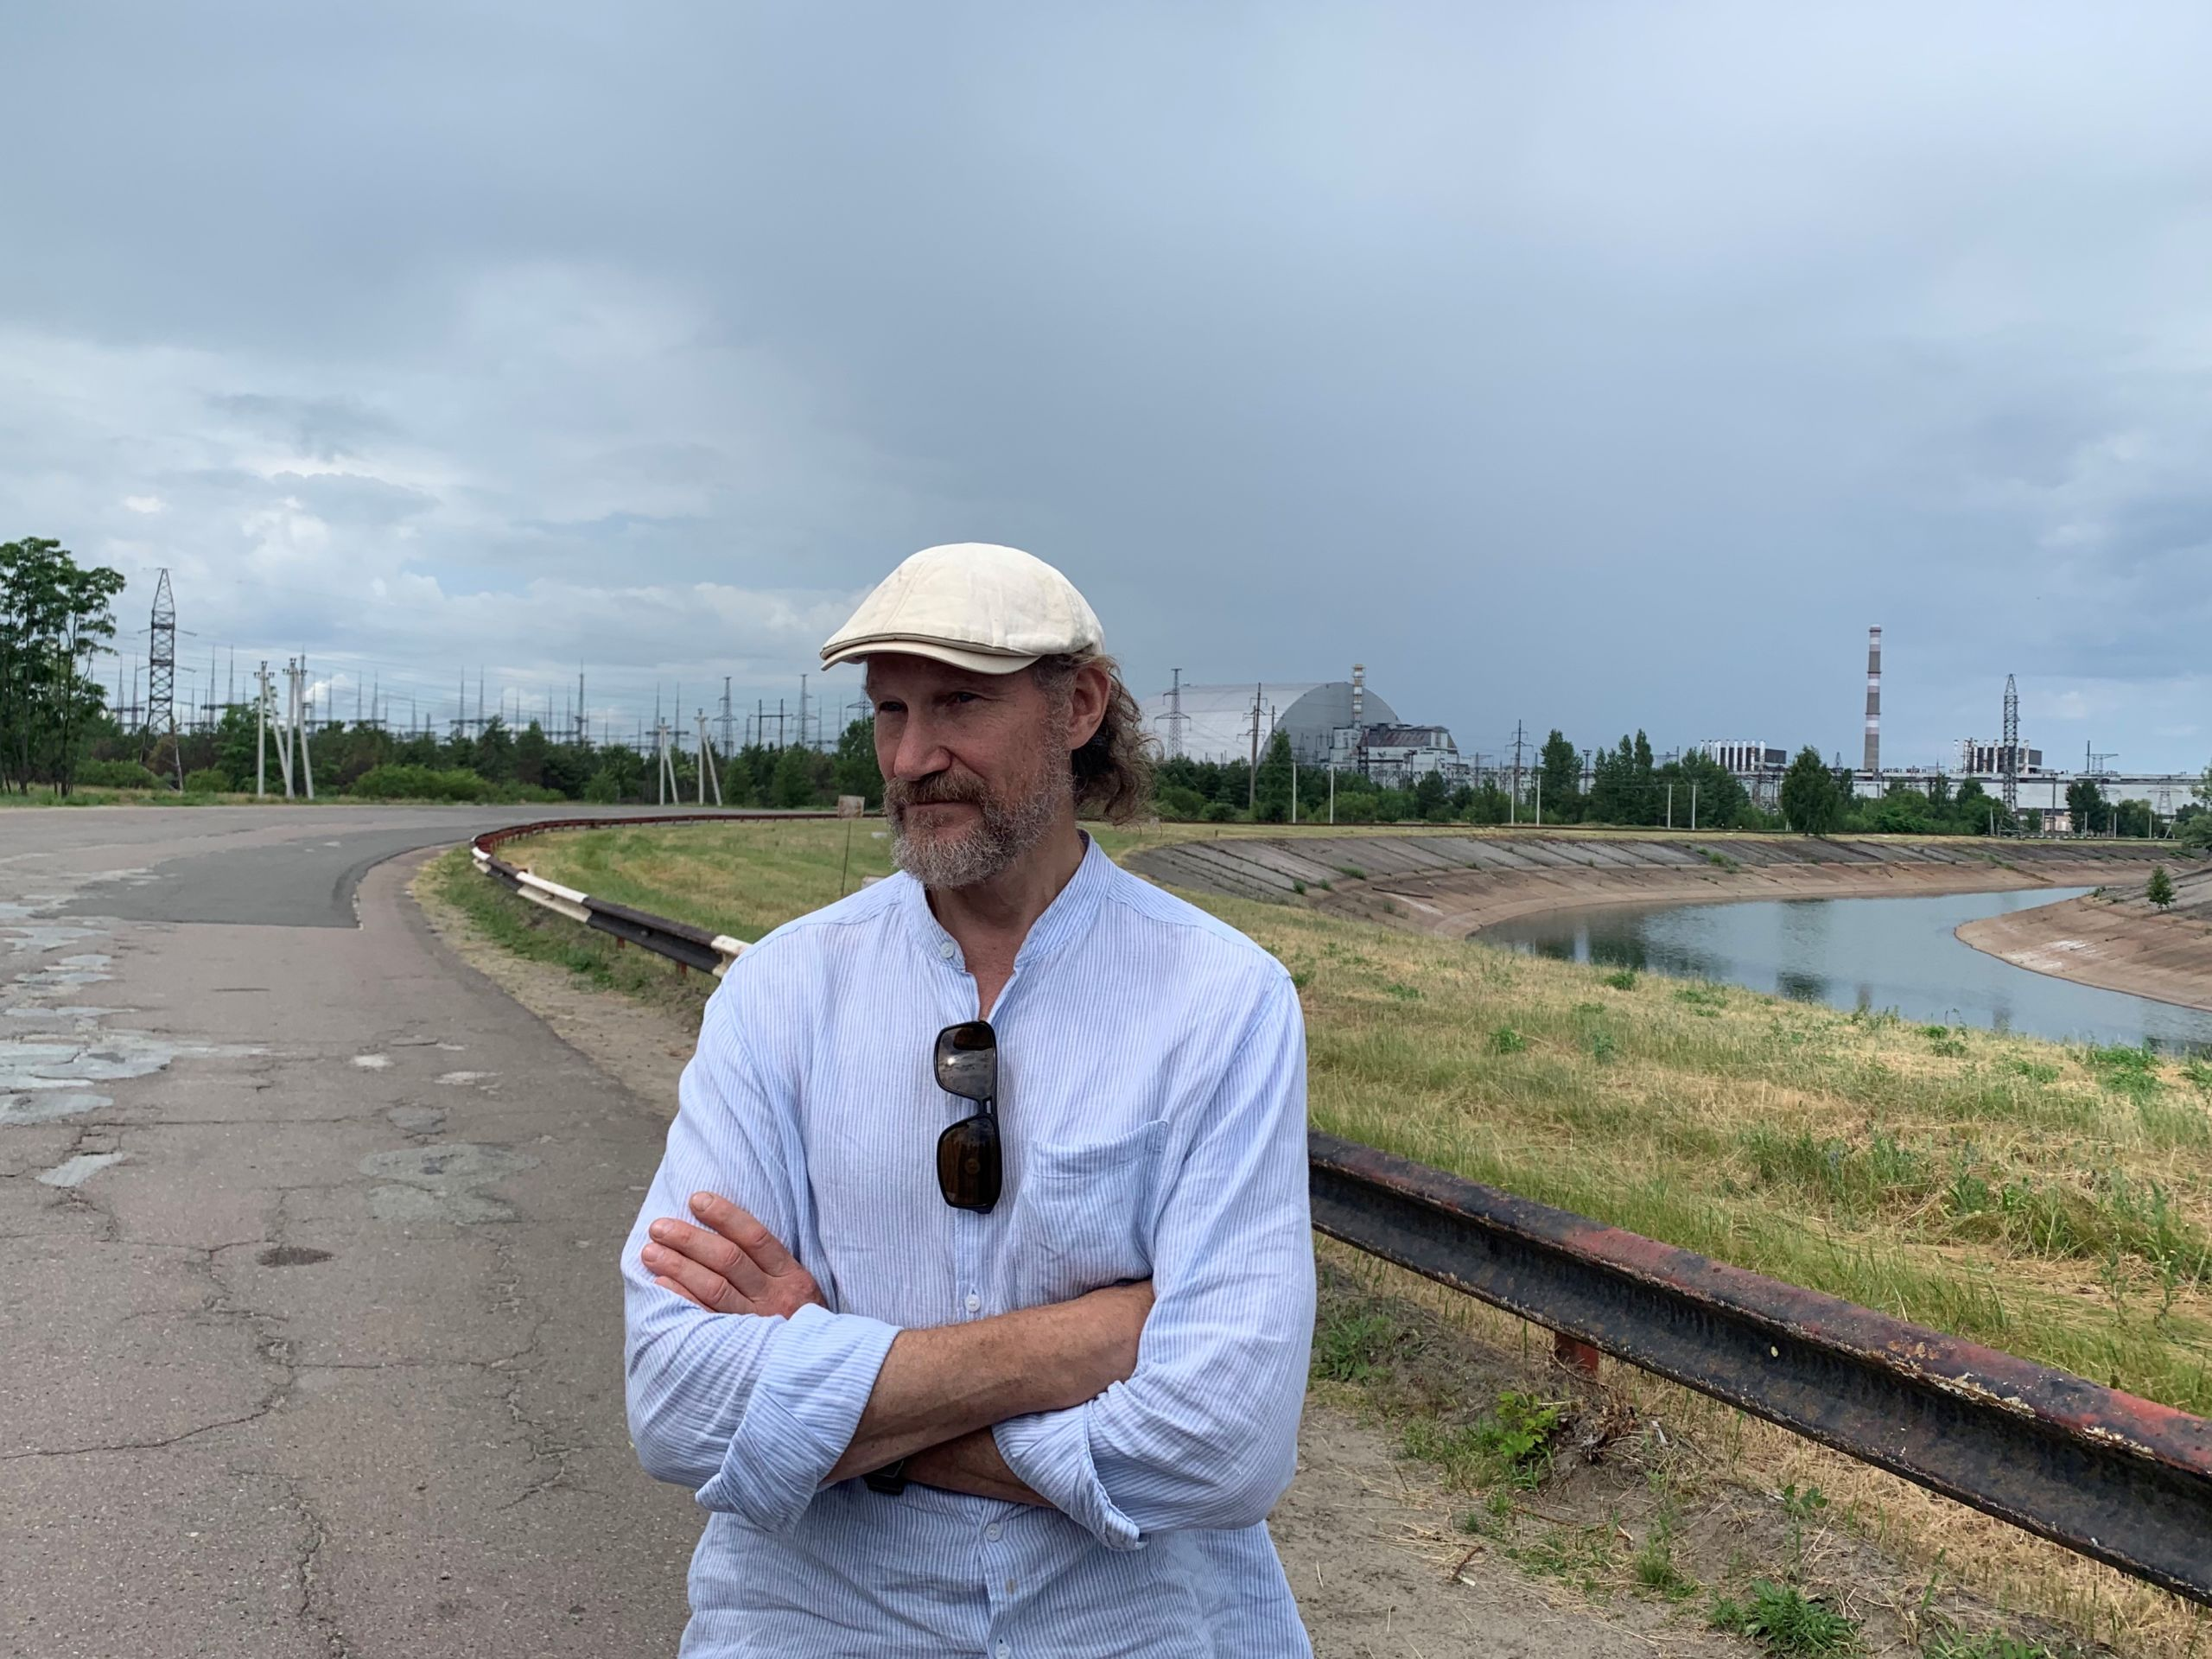 Sky Documentary The Real Chernobyl Is Out Tonight